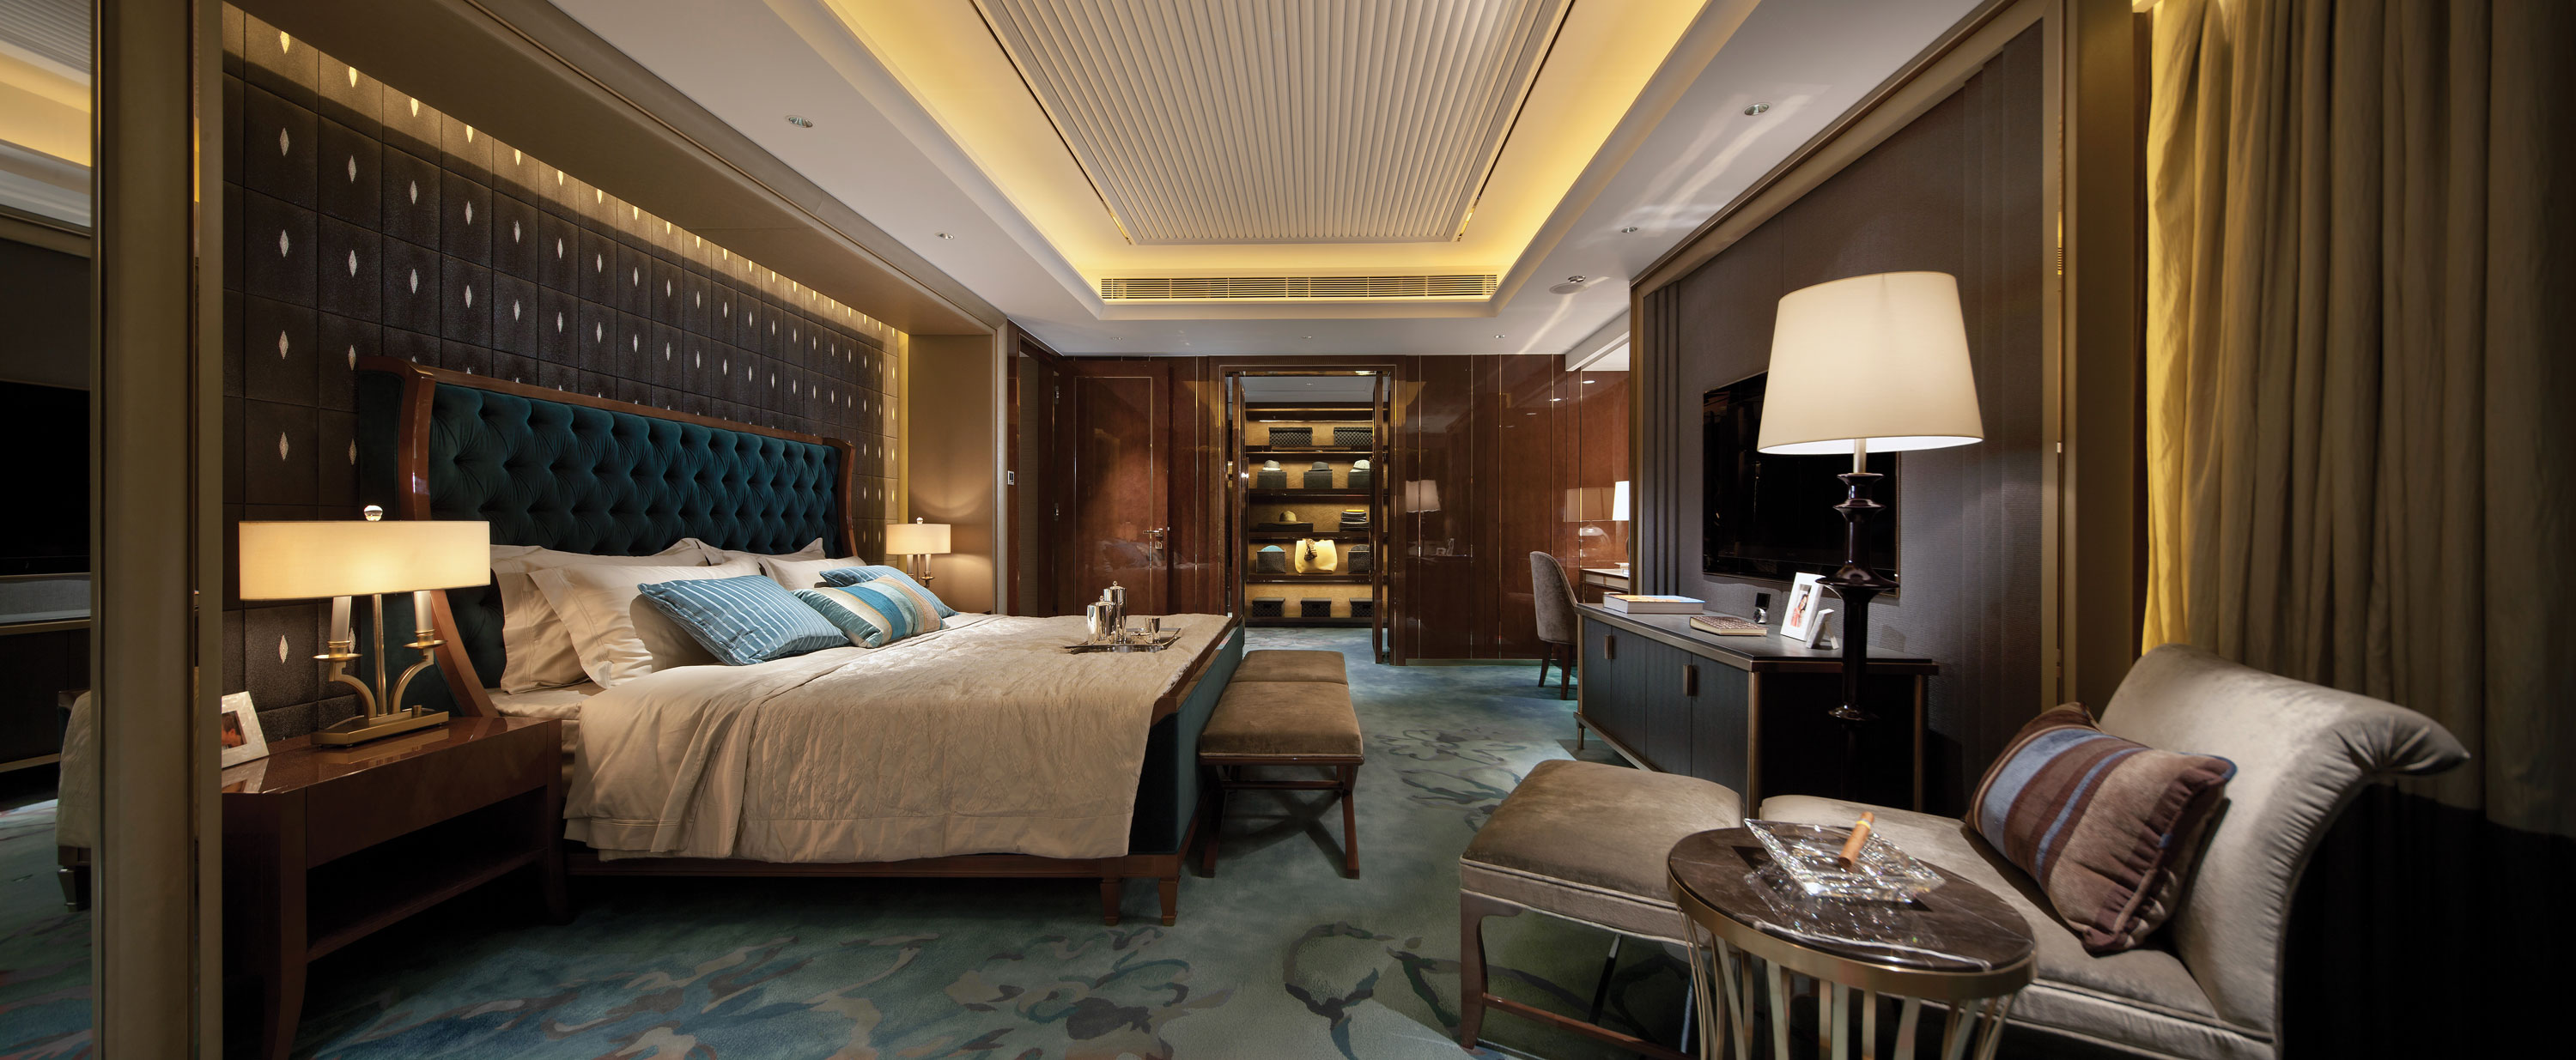 opulent blue and brown bedroom panorama   Interior Design Ideas  Like Architecture   Interior Design  Follow Us